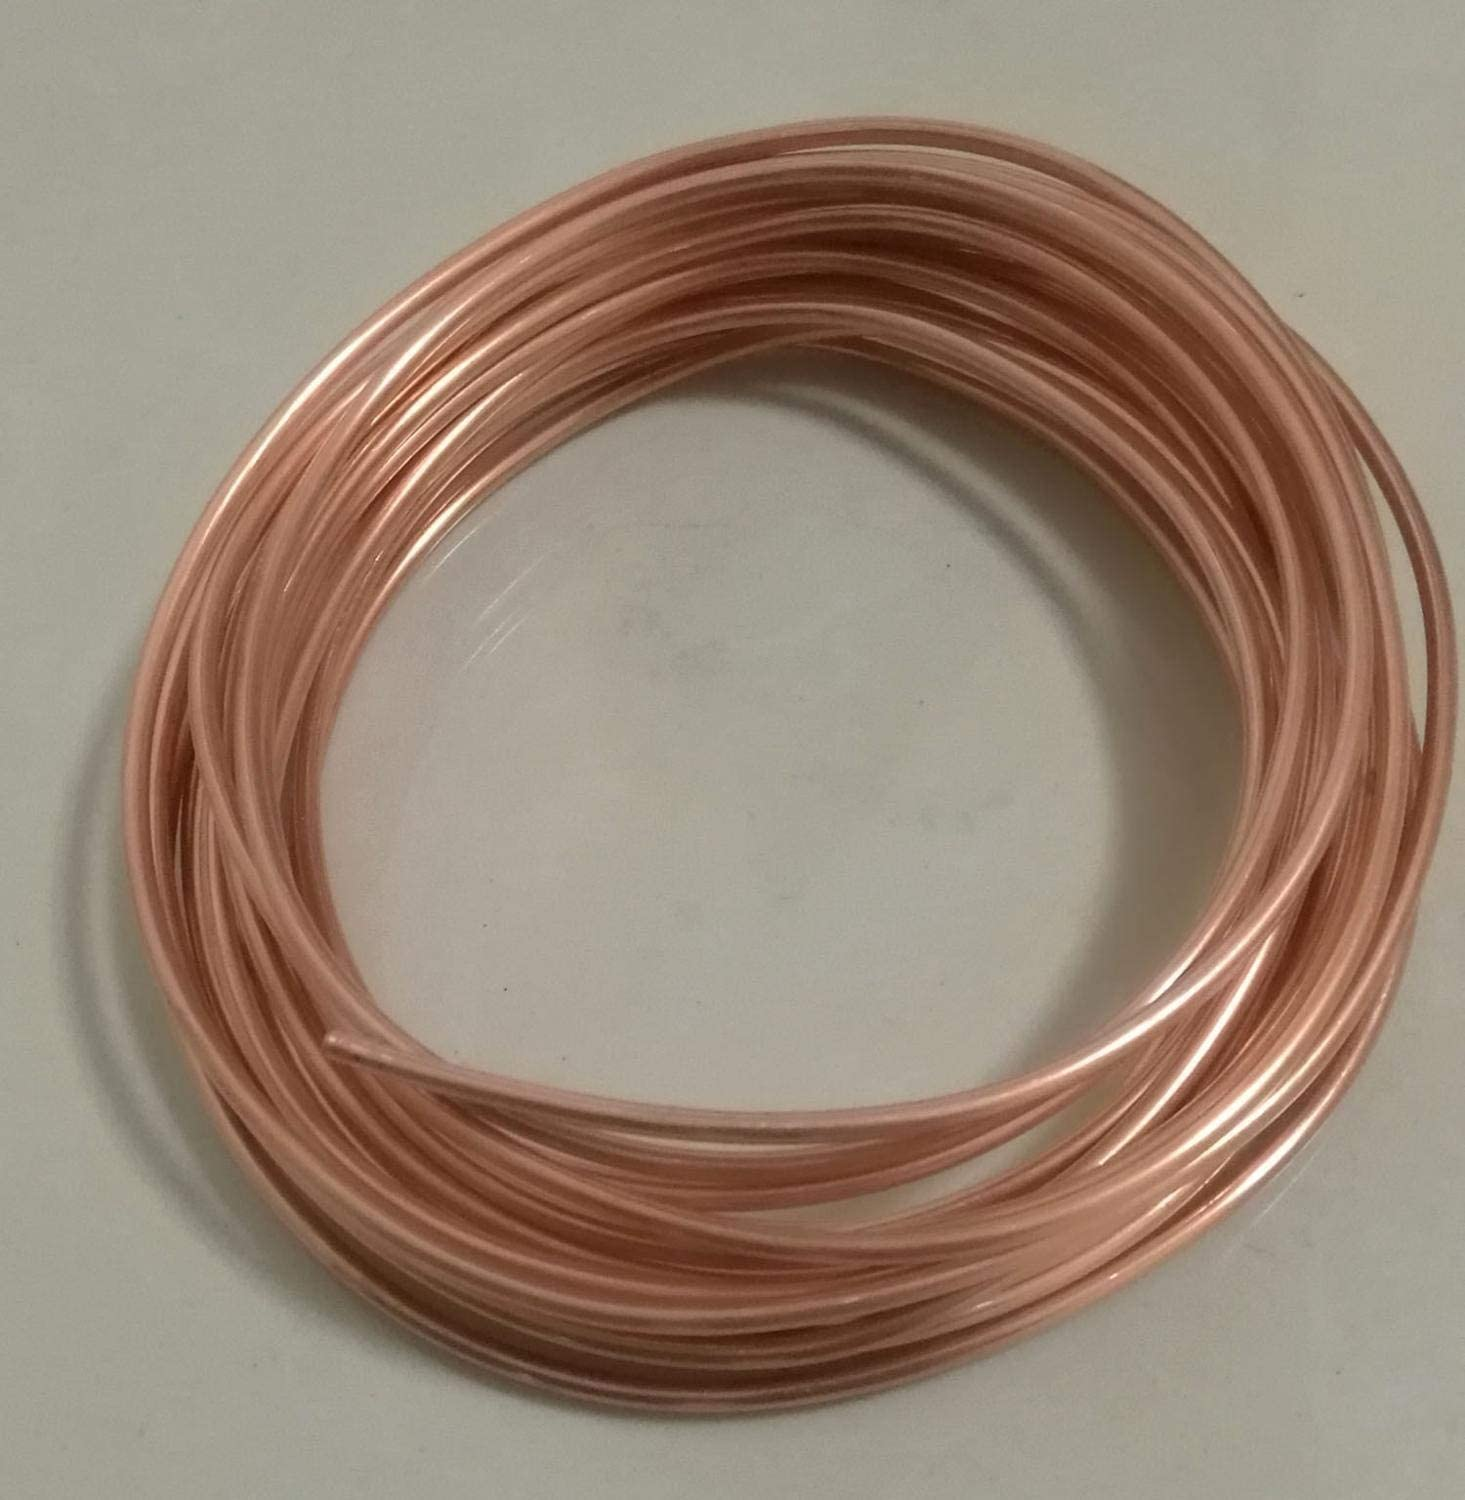 Used For Cooling And Water Heating Tool Generator Copper Pipe-cable Switch Equipment-DIY Outer Diameter 3mm Heat Dissipation Pipe BTCS-X 5m T2 Copper Pipe Fittings Heat Transfer Pipe